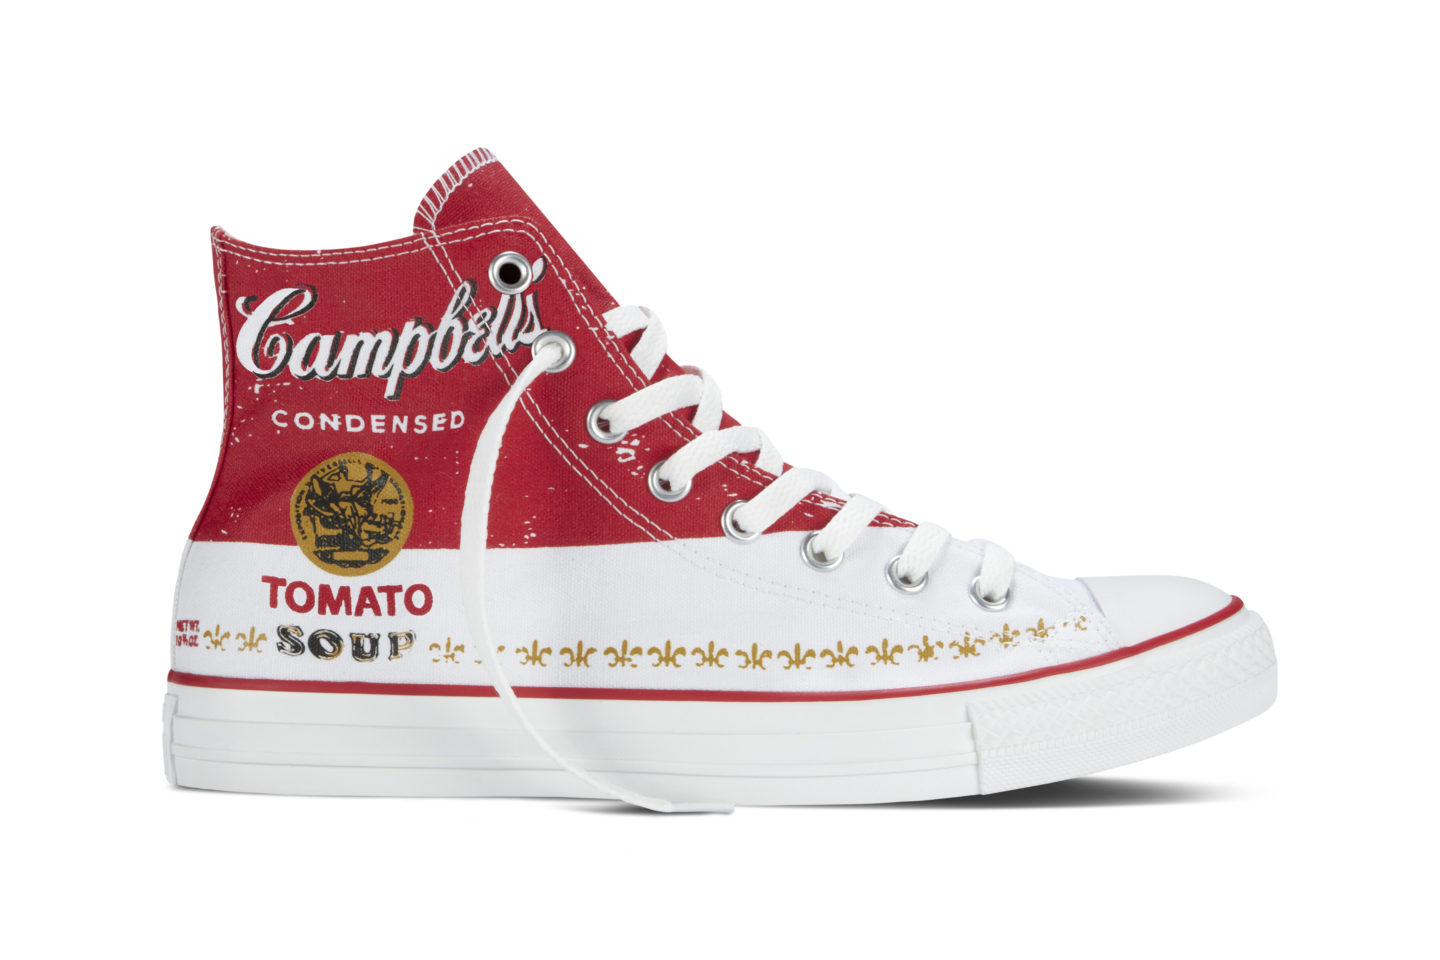 Check Out The Collection! ANDY WARHOL X Converse Spring 2015